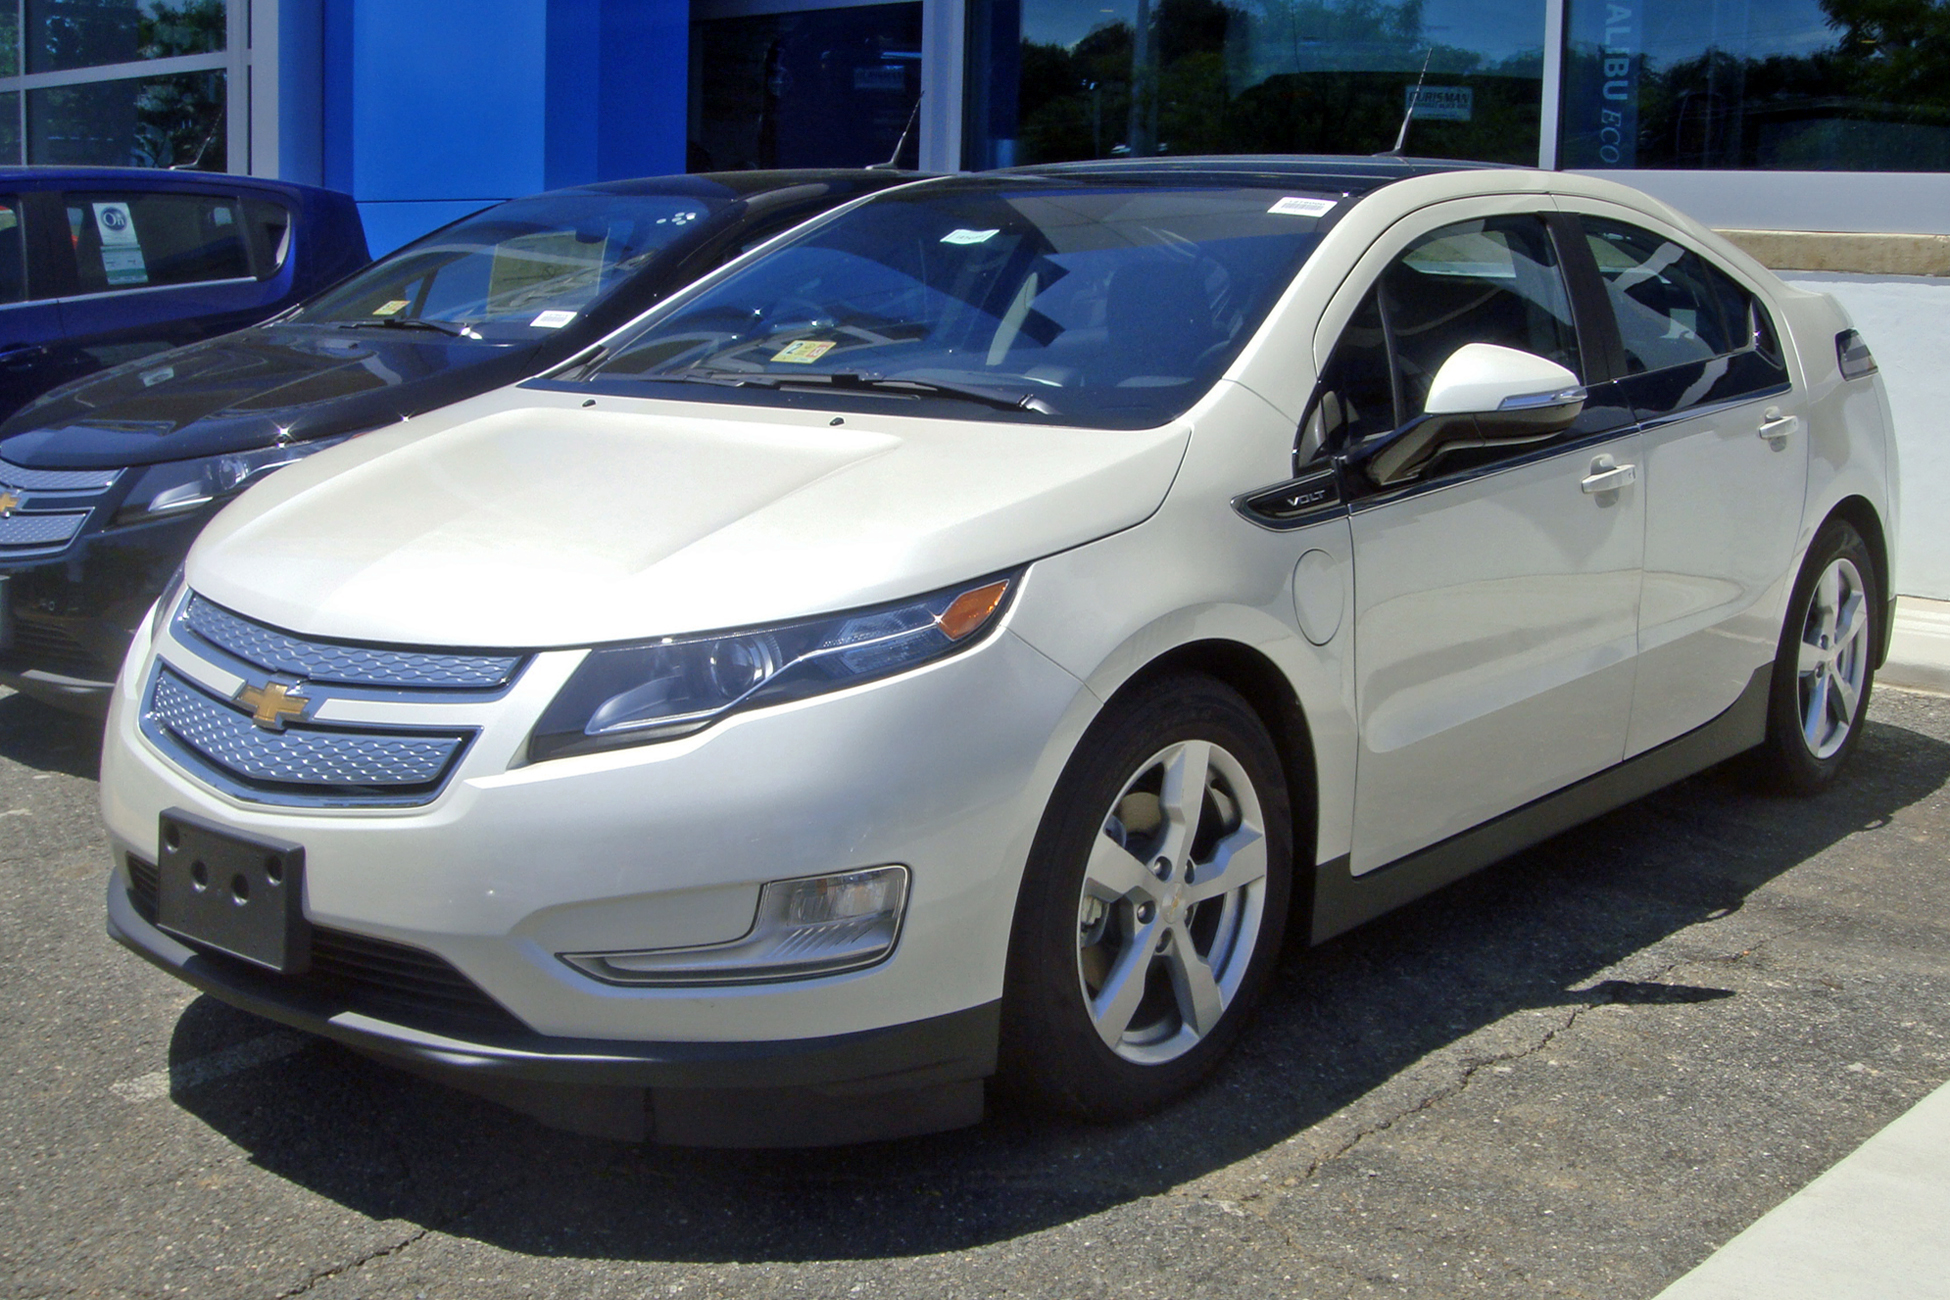 2020 Chevy Volt History